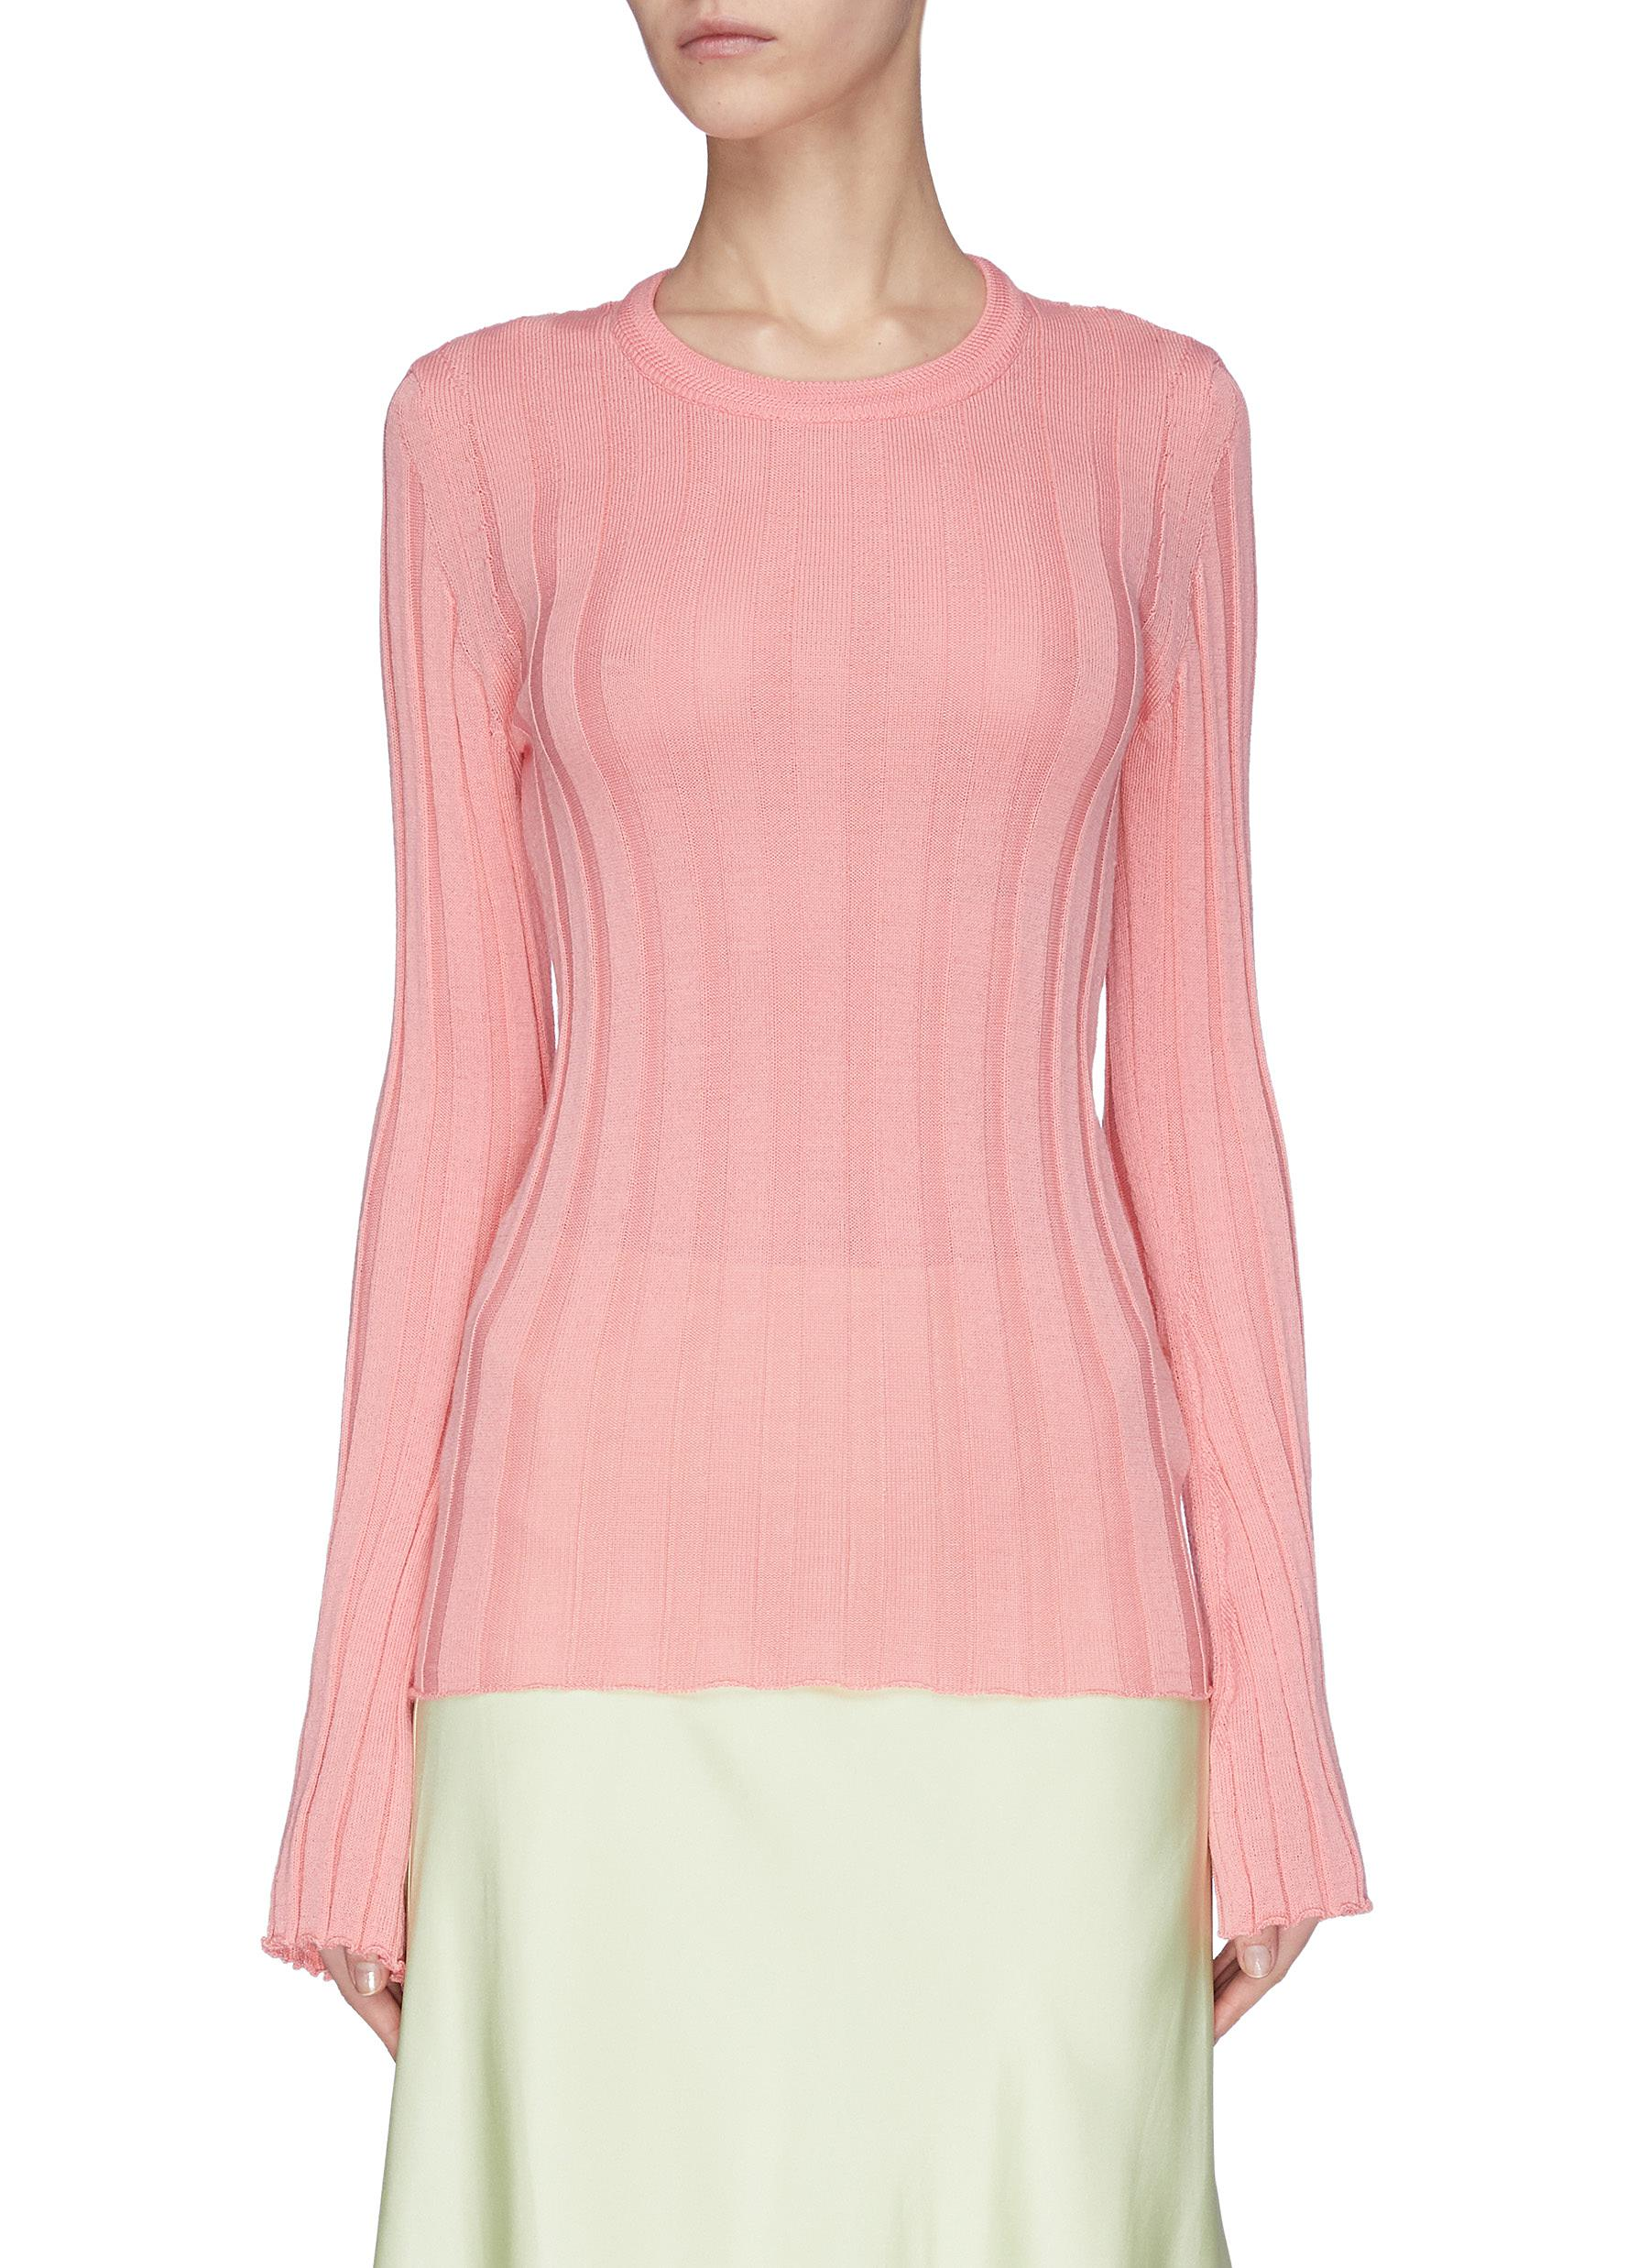 Buy Maggie Marilyn Knitwear 'The Sherbet' rib knit top